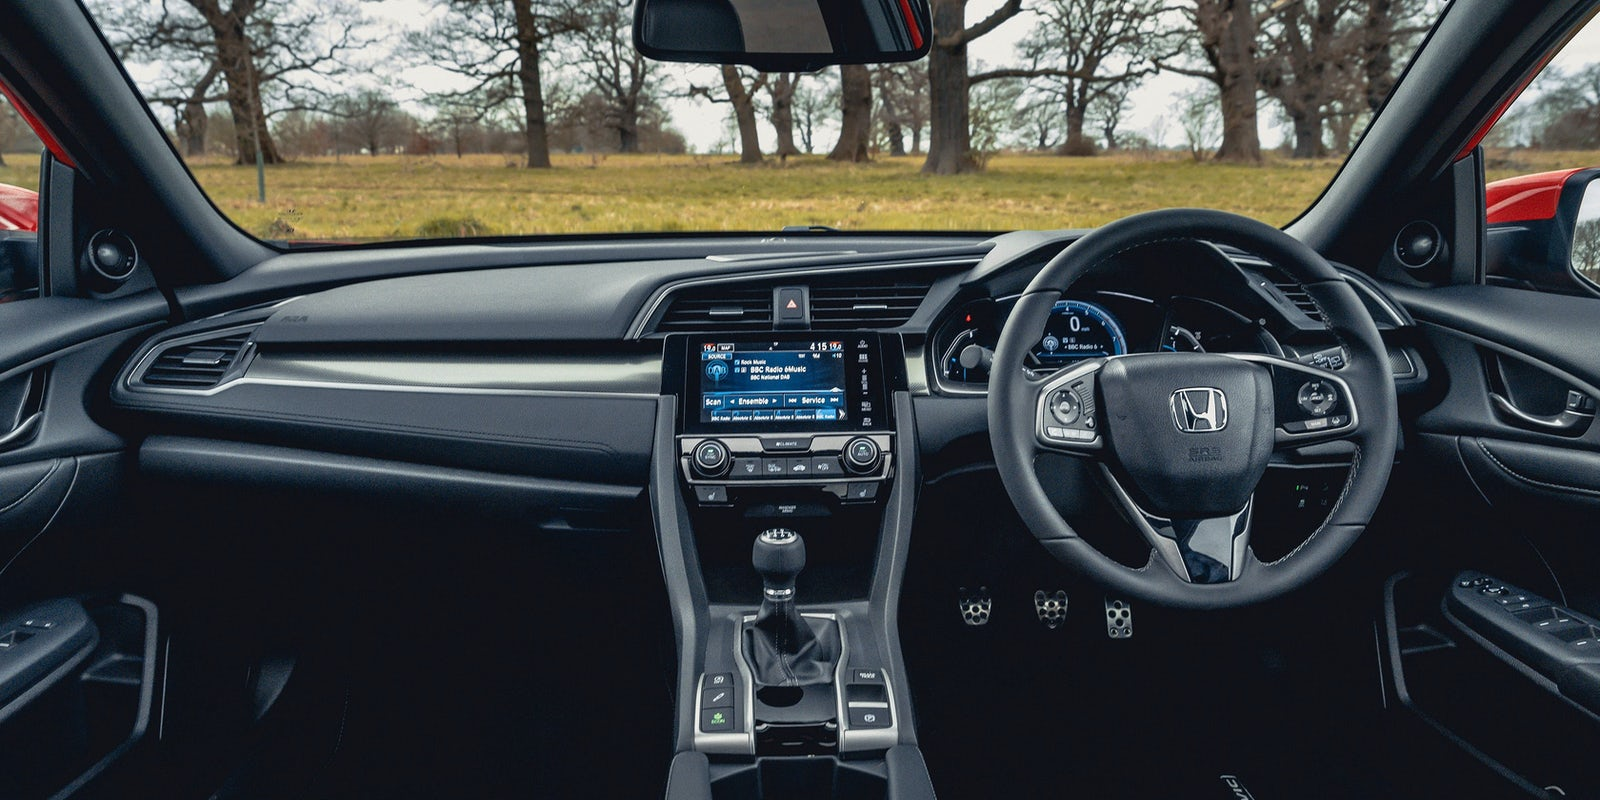 Honda Civic interior and infotainment | carwow